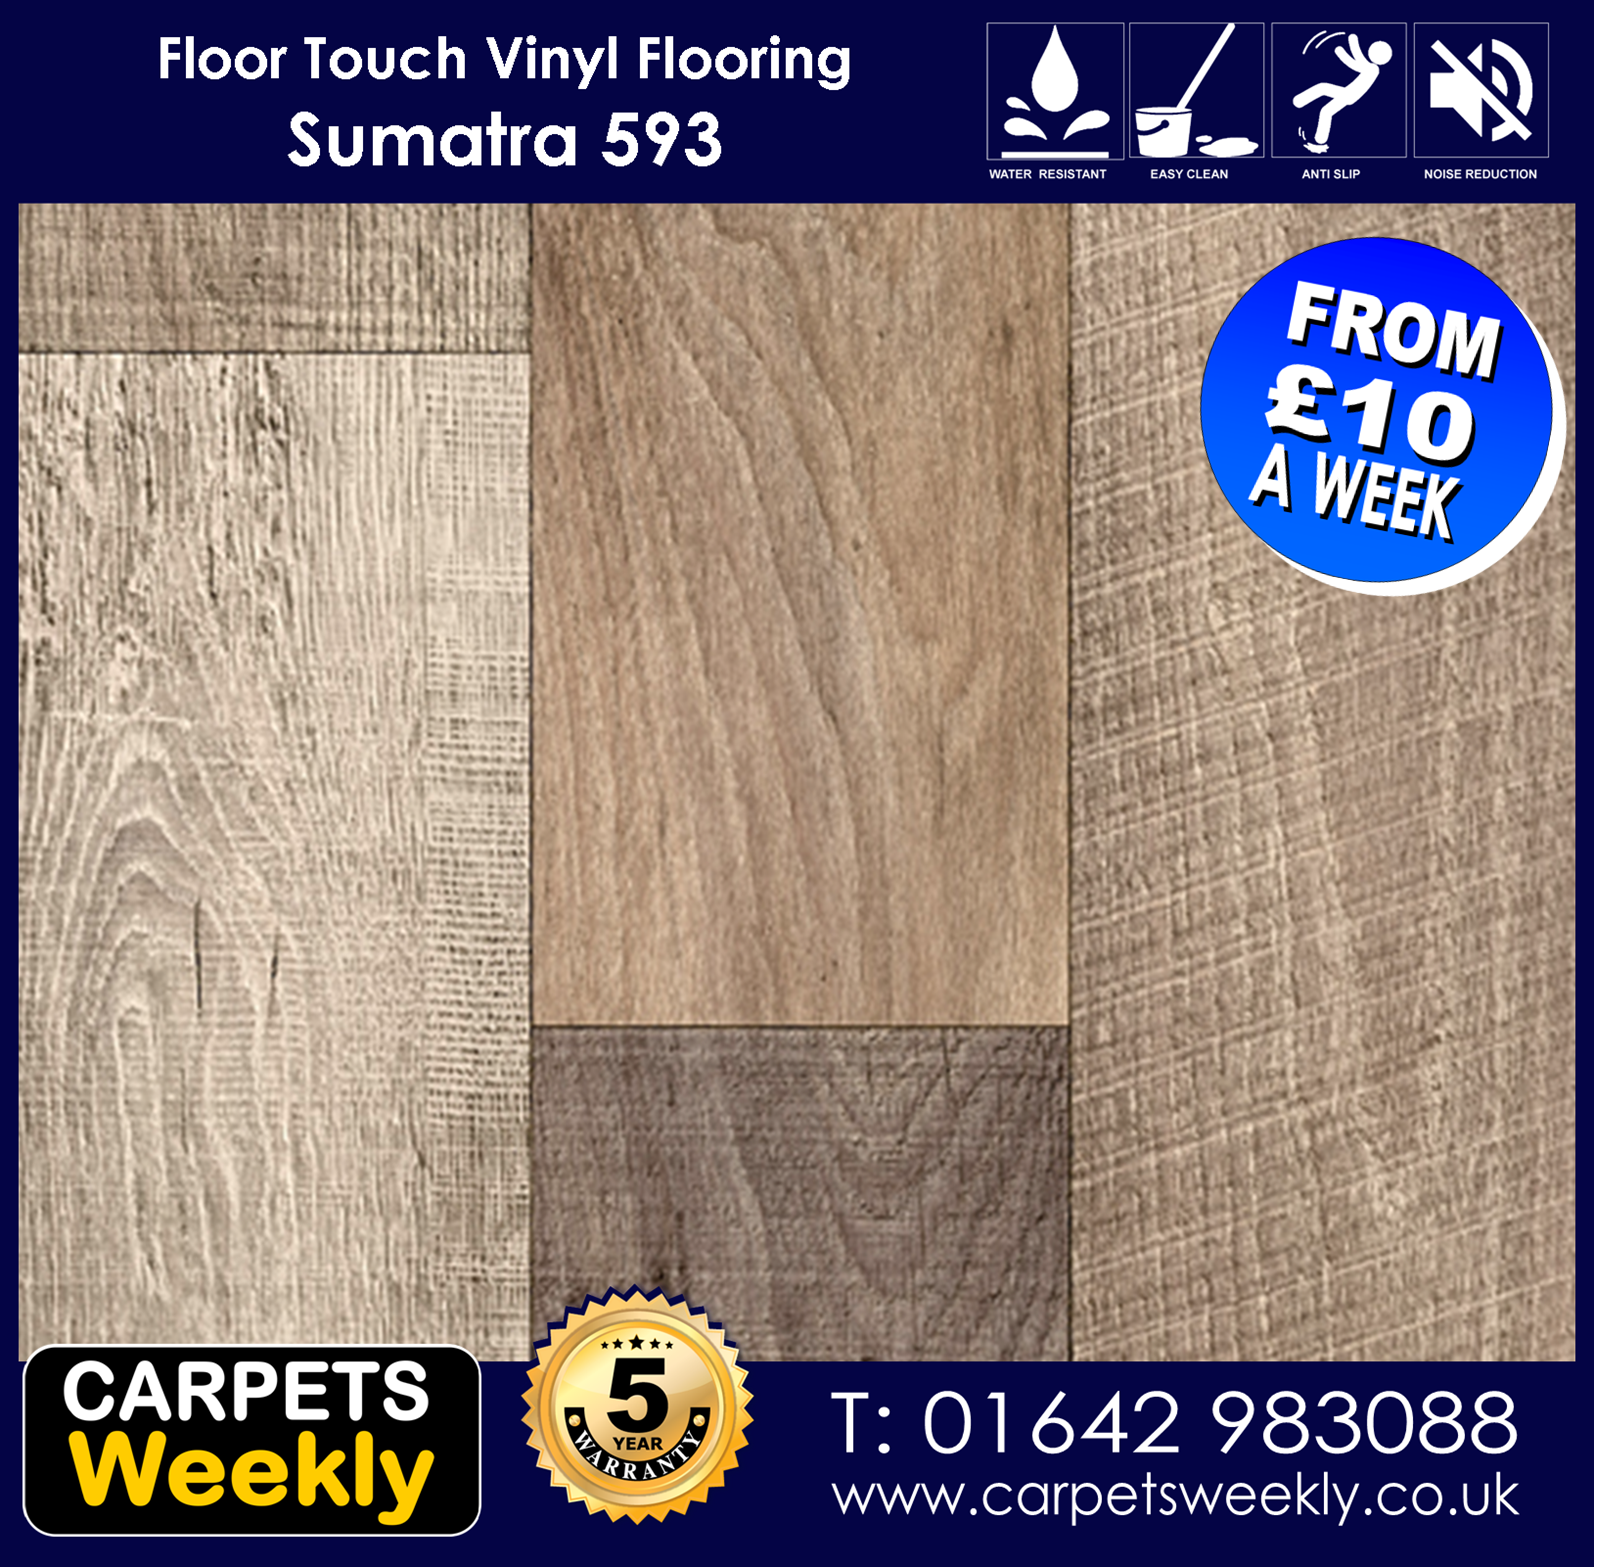 Sumatra 593 Vinyl Flooring by Floor Touch from Carpets Weekly